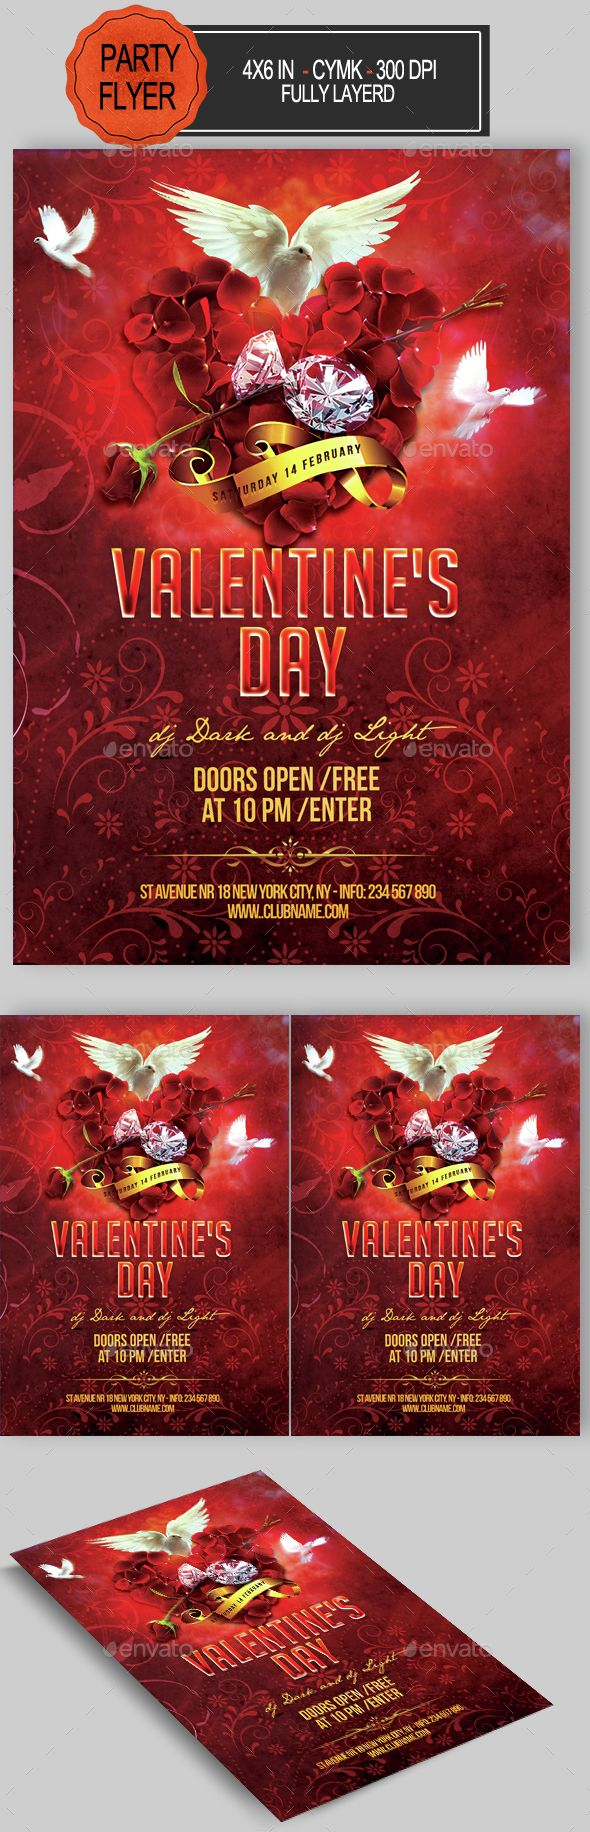 Valentine's Day Flyer — Photoshop PSD #anniversary #color • Available here → https://graphicriver.net/item/valentines-day-flyer/14561716?ref=pxcr